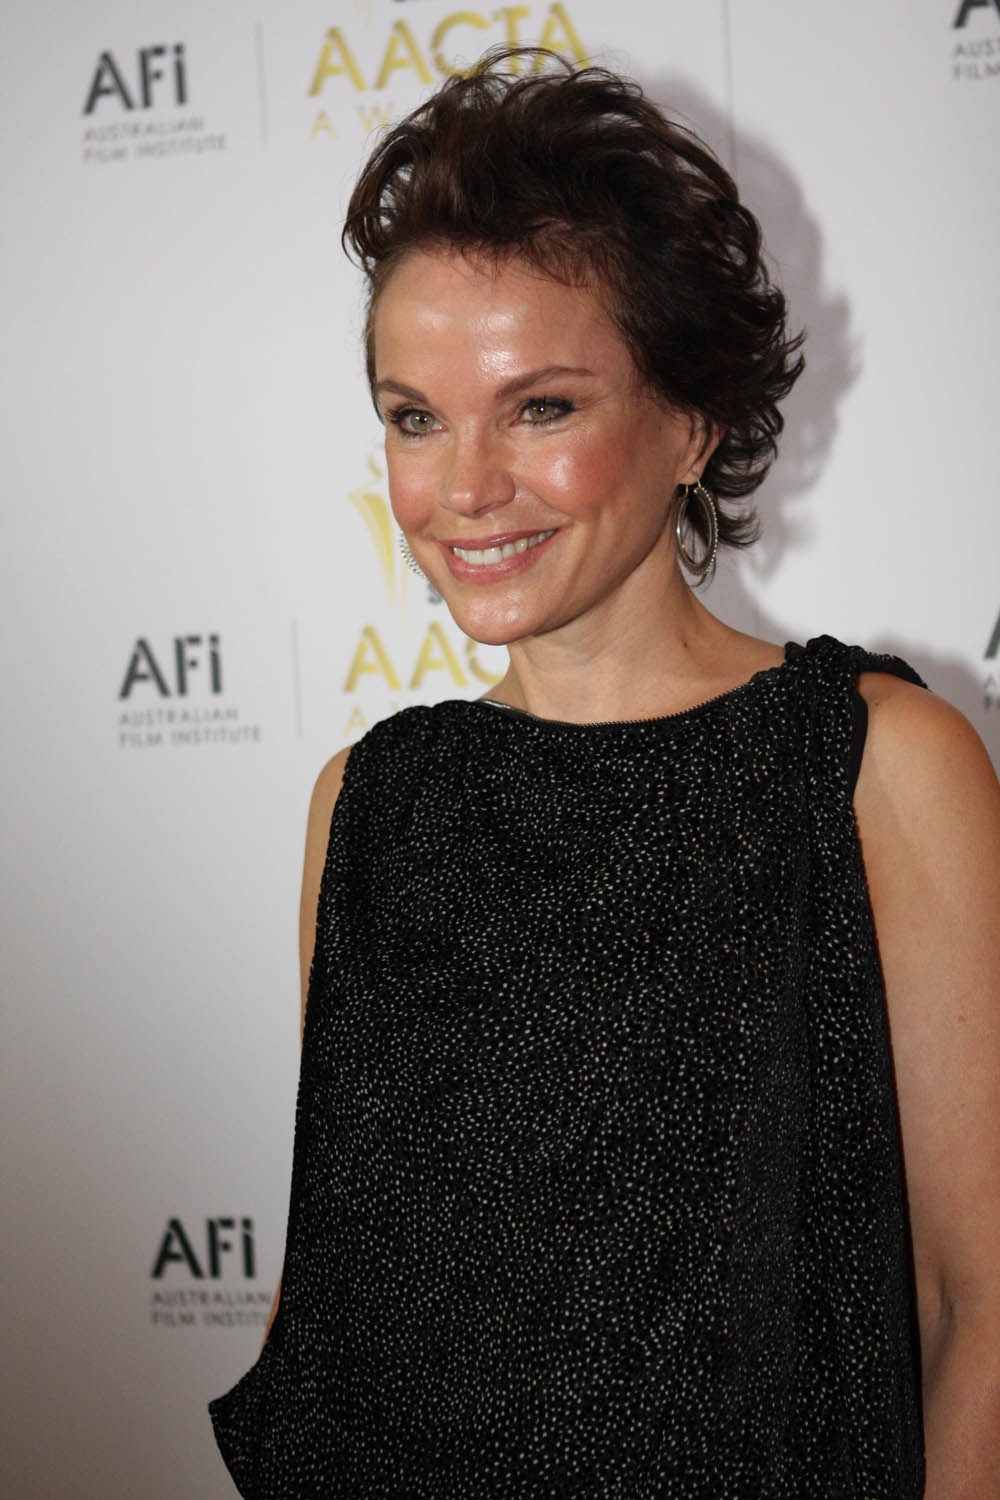 sigrid thornton wentworthsigrid thornton family, sigrid thornton, sigrid thornton biography, sigrid thornton wikipedia, sigrid thornton husband, sigrid thornton downton abbey, sigrid thornton plastic surgery, sigrid thornton wentworth, sigrid thornton movies and tv shows, sigrid thornton imdb, sigrid thornton images, sigrid thornton net worth, sigrid thornton diet, sigrid thornton judy garland, sigrid thornton prisoner, sigrid thornton mother, sigrid thornton logies 2015, sigrid thornton facelift